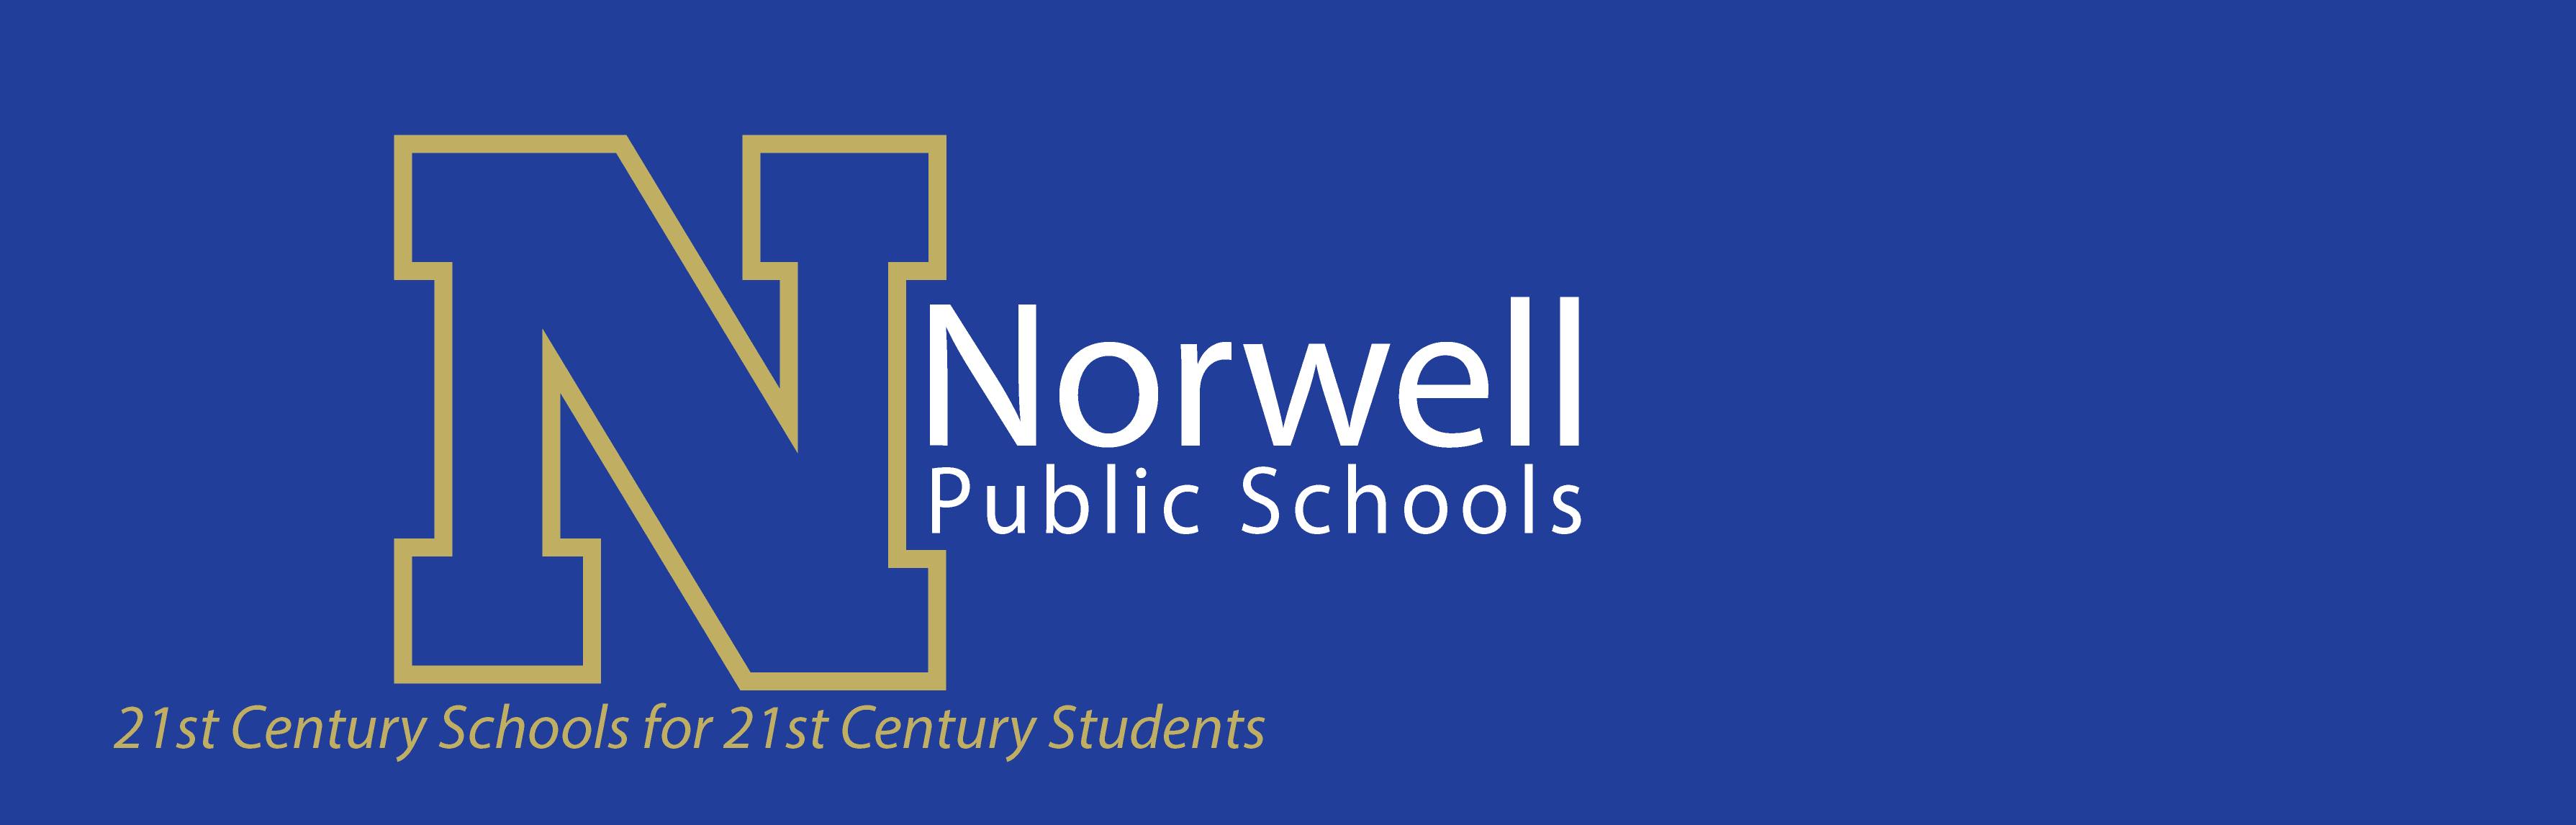 About Norwell Public Schools / Staff Directory